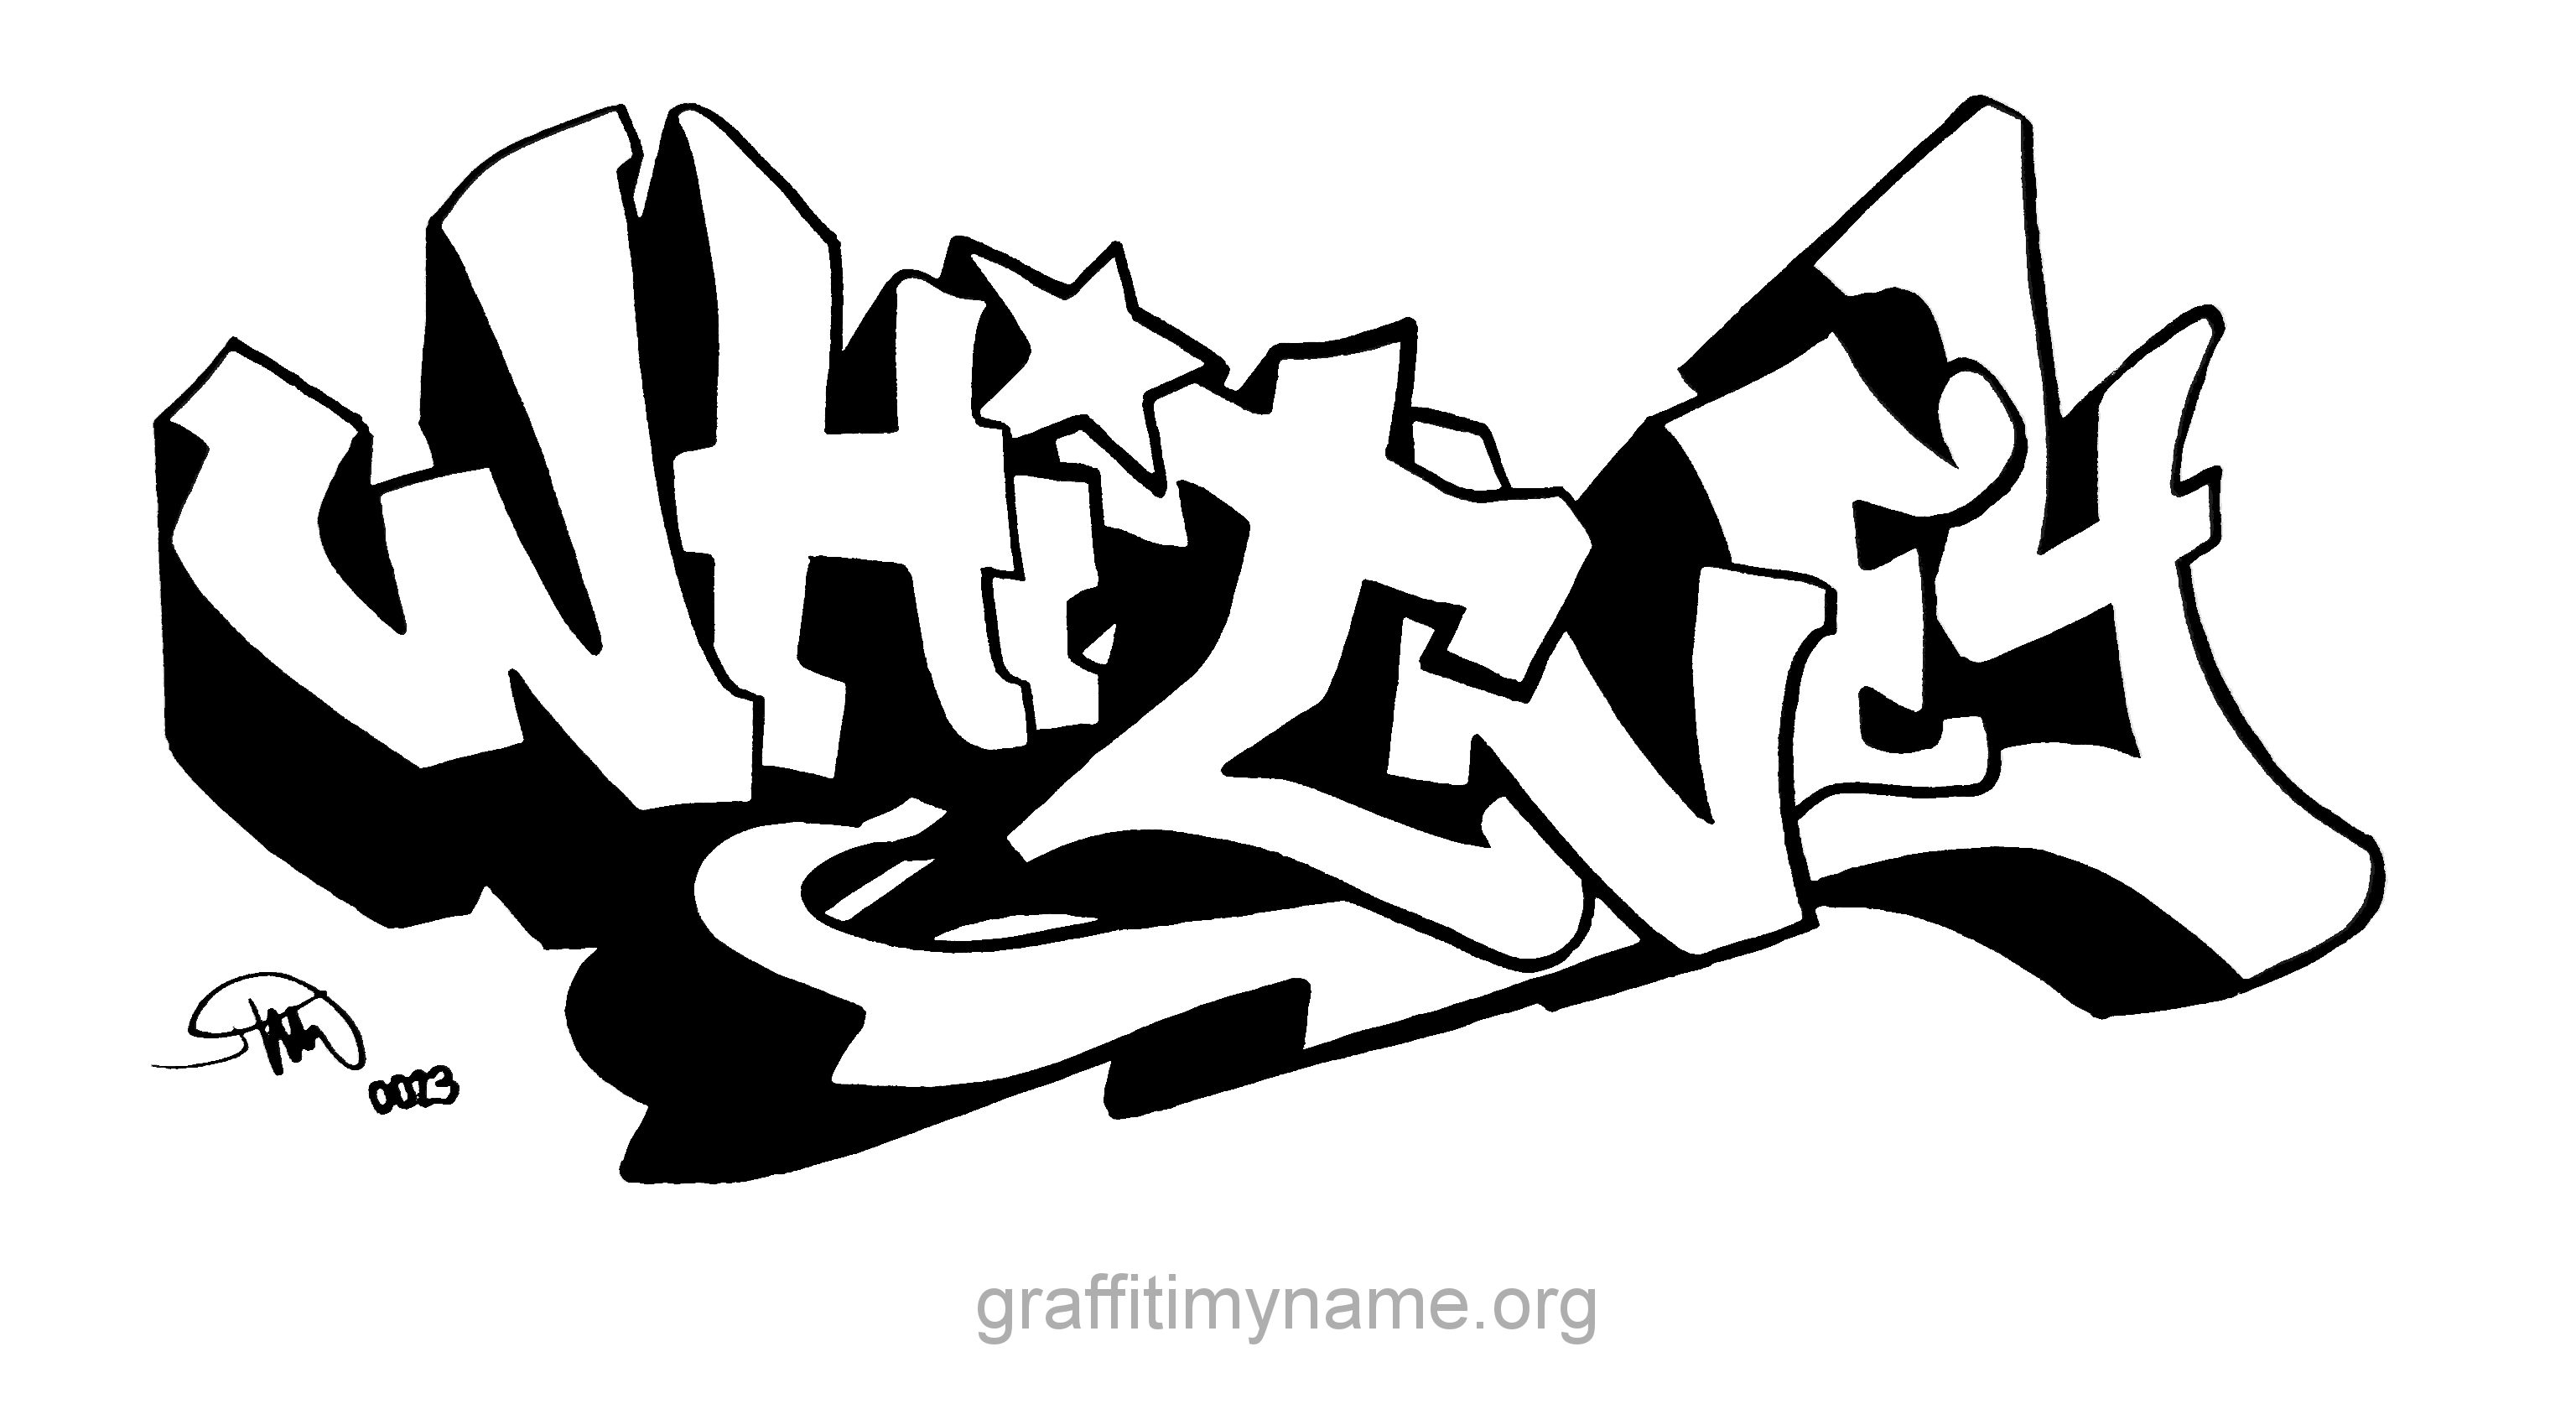 The name whitney images whitney in graffiti